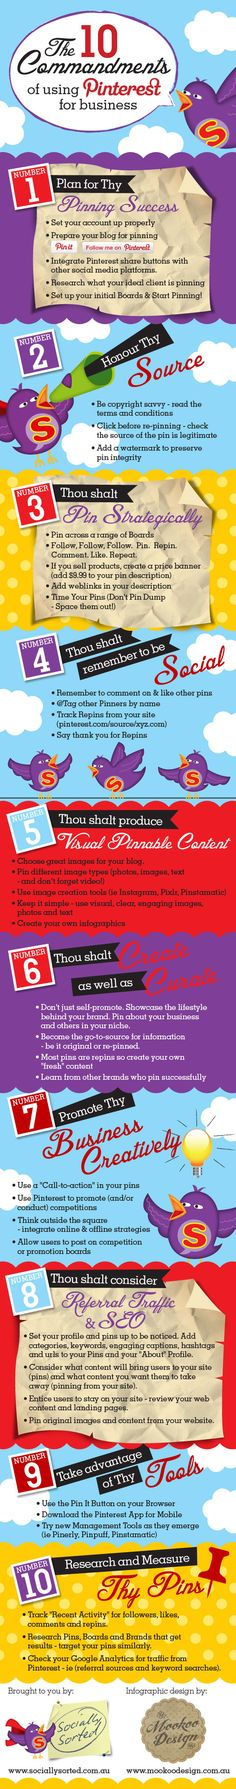 "10 Commandments for Pinterest business users. Love #2 ""Honour Thy Source!"" via @Entrepreneur Magazine"